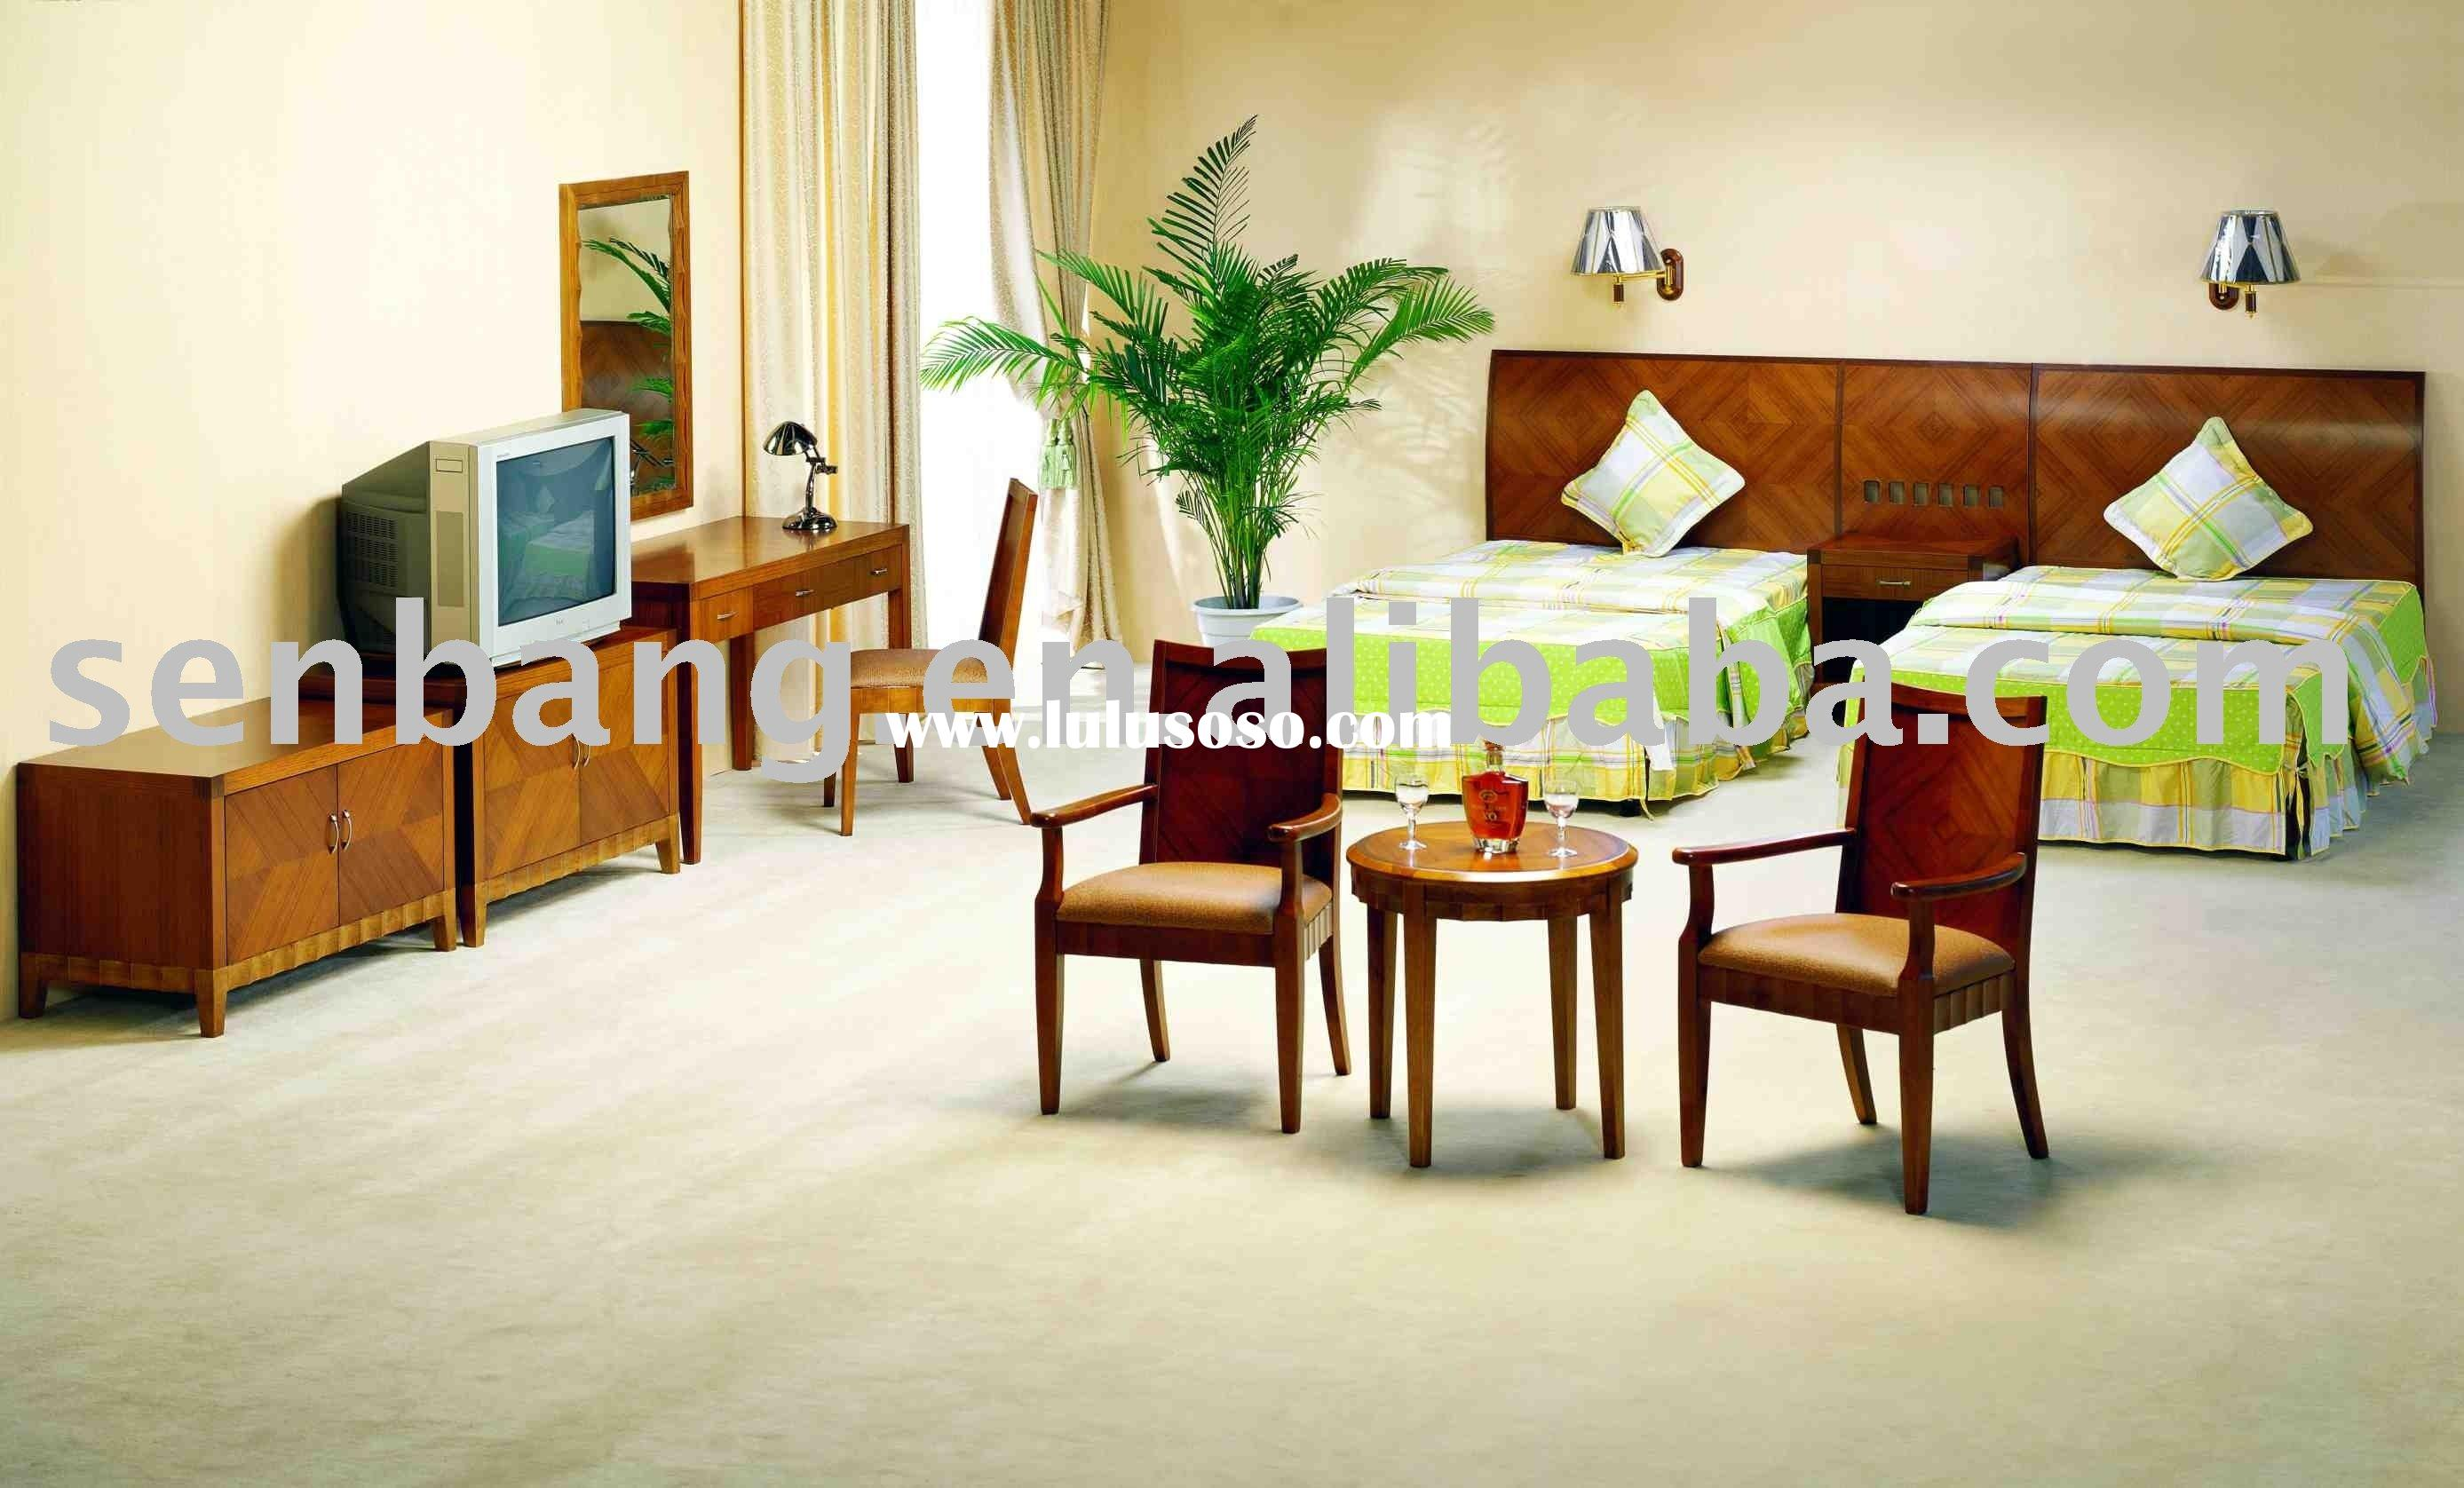 Bedroom Sets,hotel standard room suite,hotel furniture,wooden furniture